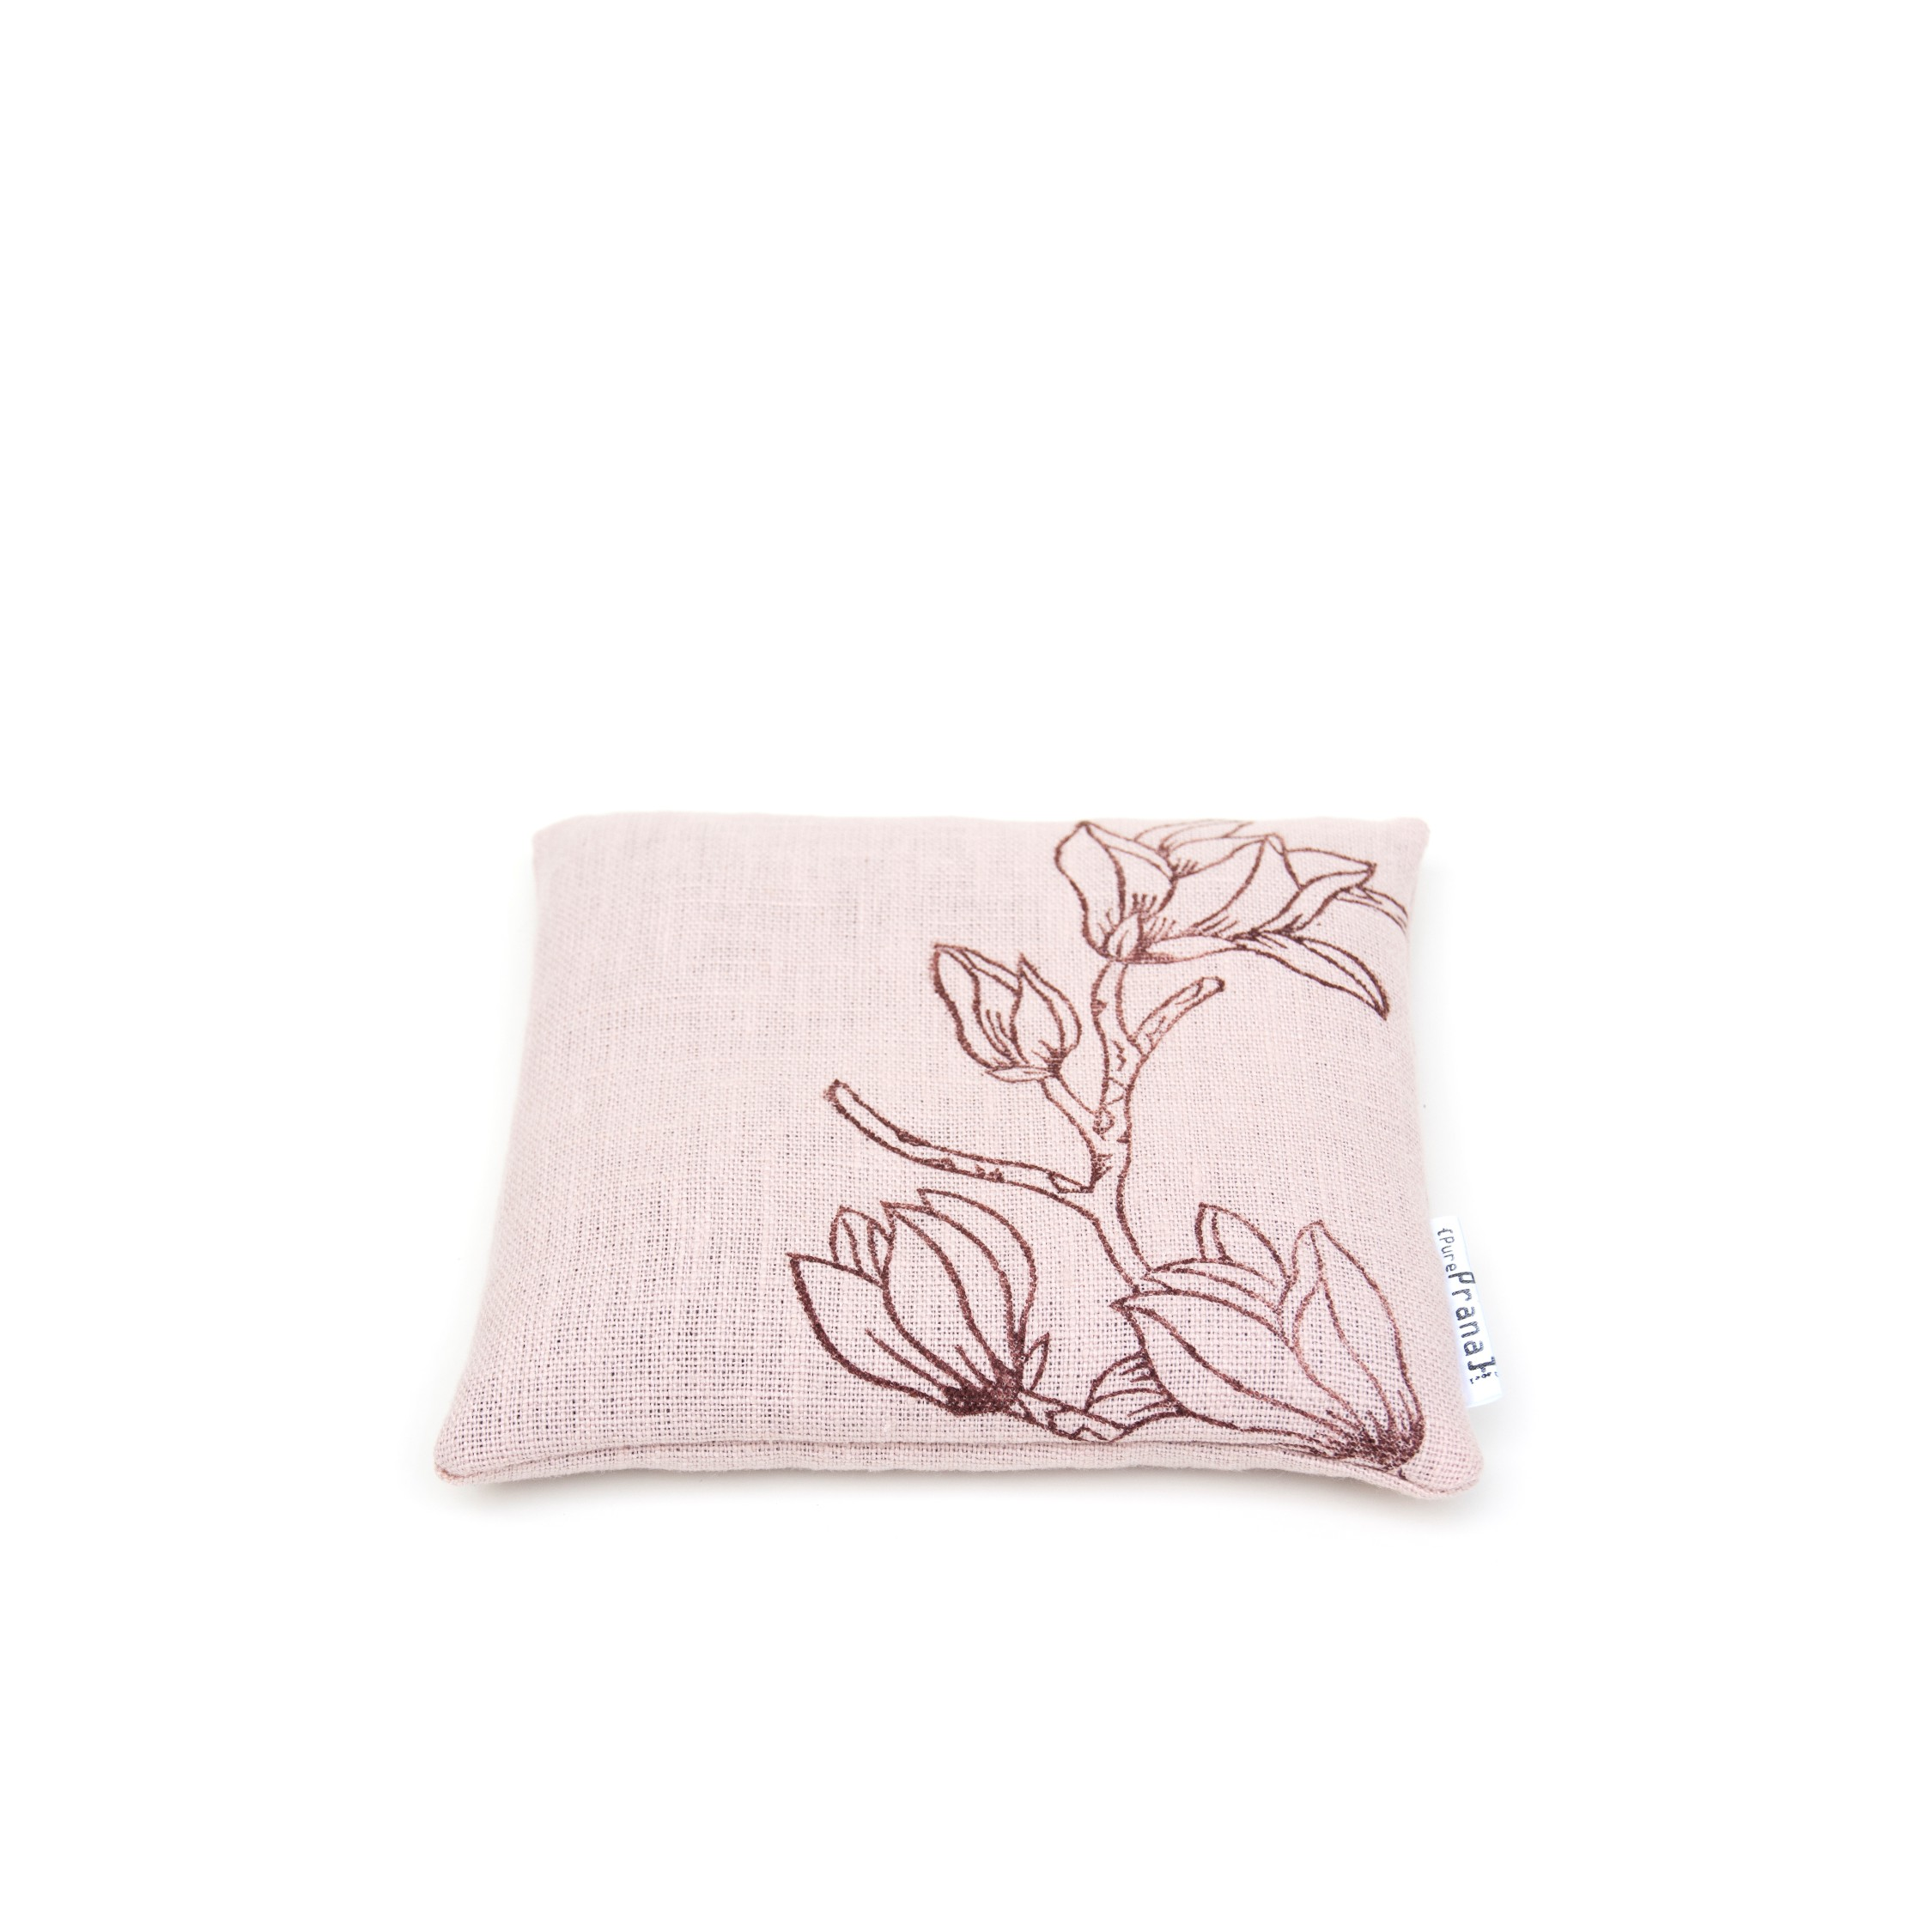 Singing bowl pillow Magnolia by Pure Prana Label